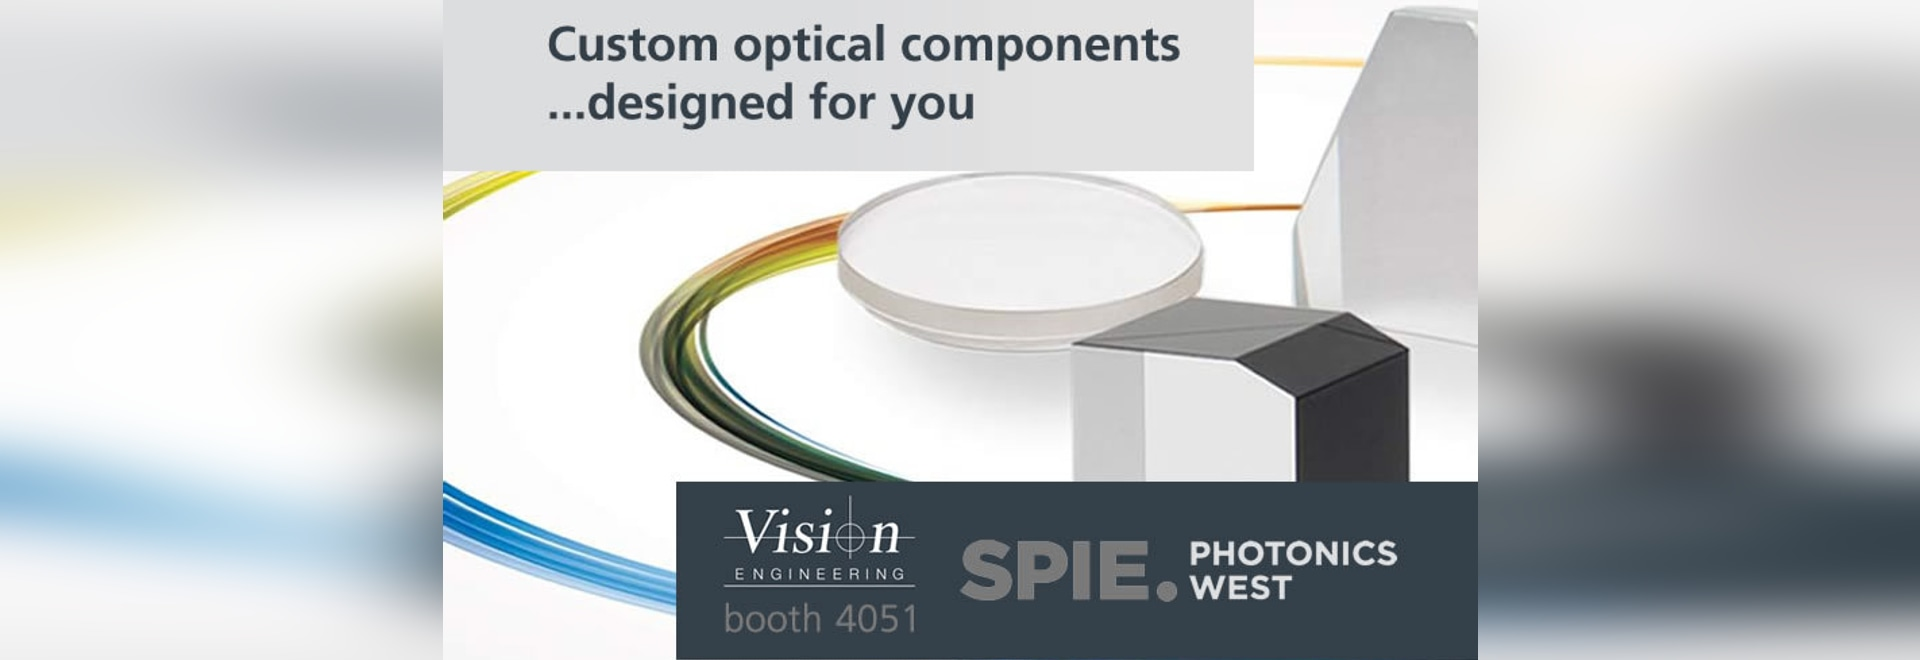 Vision Engineering brings optical and manufacturing services capabilities to Photonics West Show